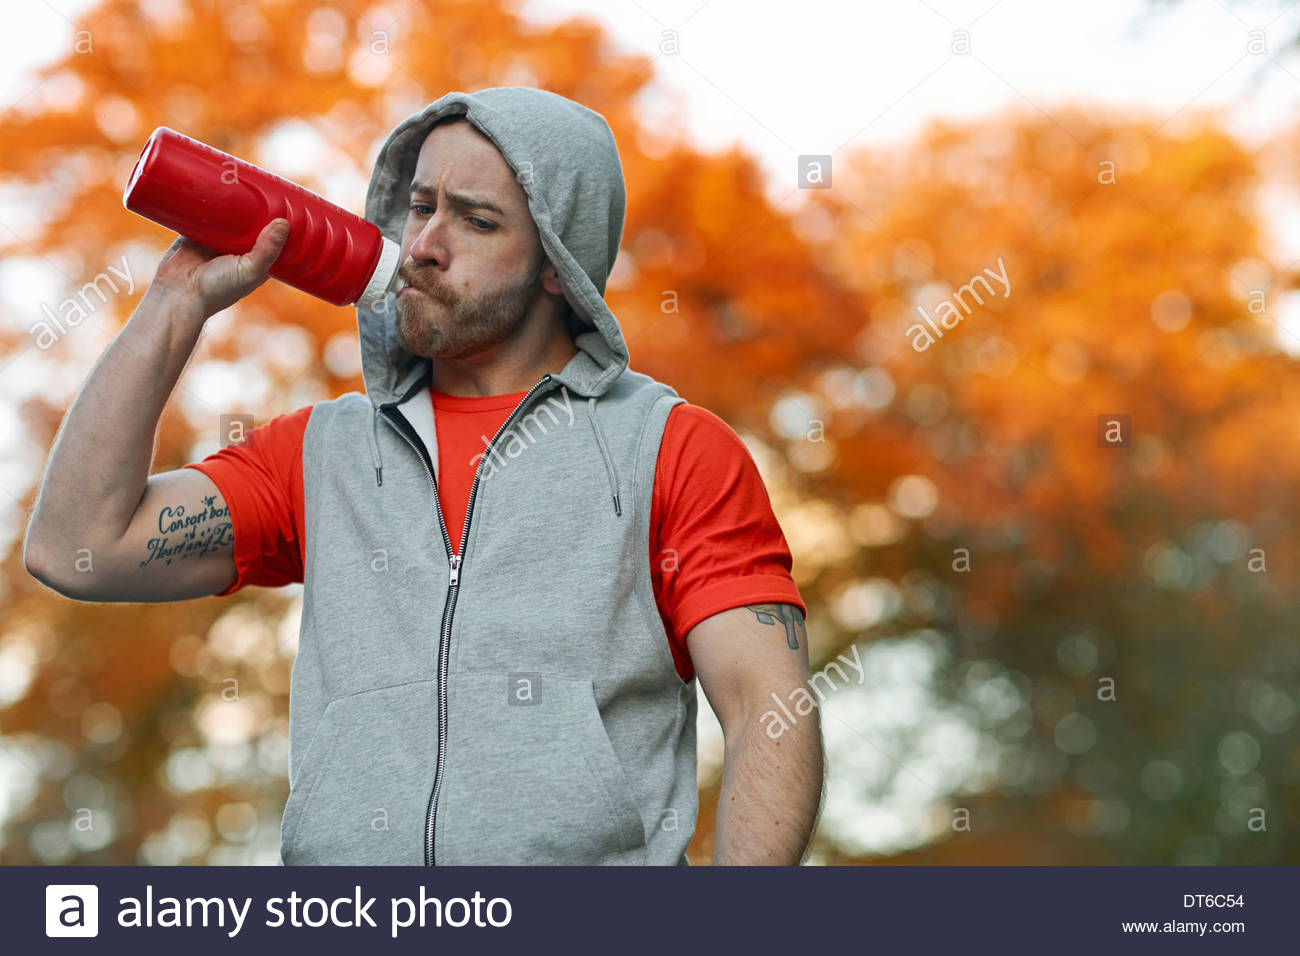 Young man drinking from plastic bottle - Stock Image